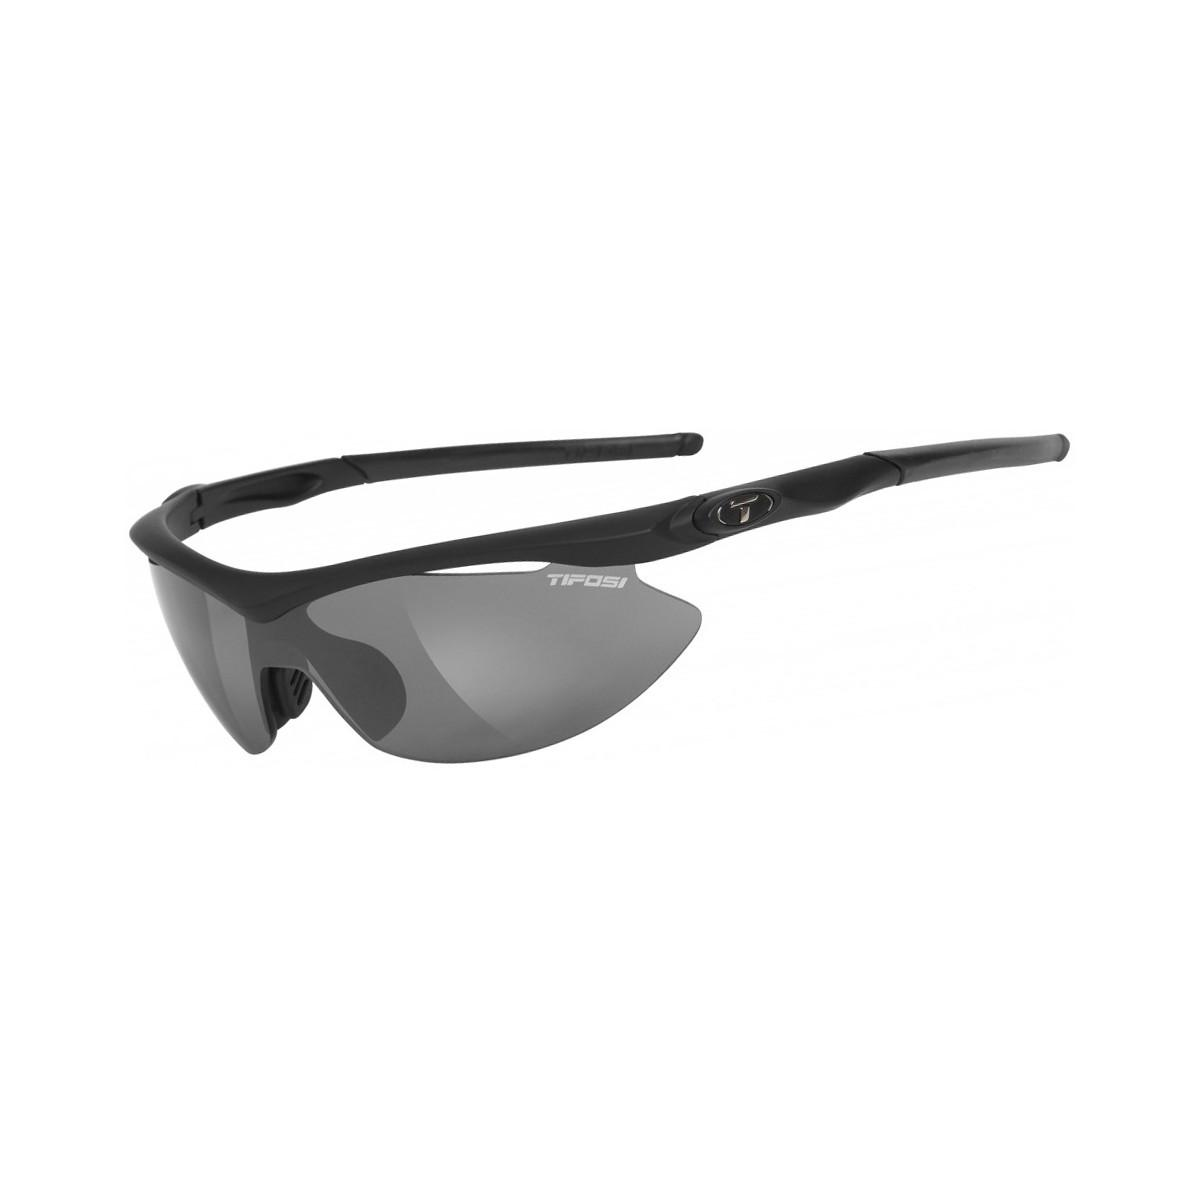 e4ceba80a8c Lyst - Tifosi Optics Slip Sunglasses in Black for Men